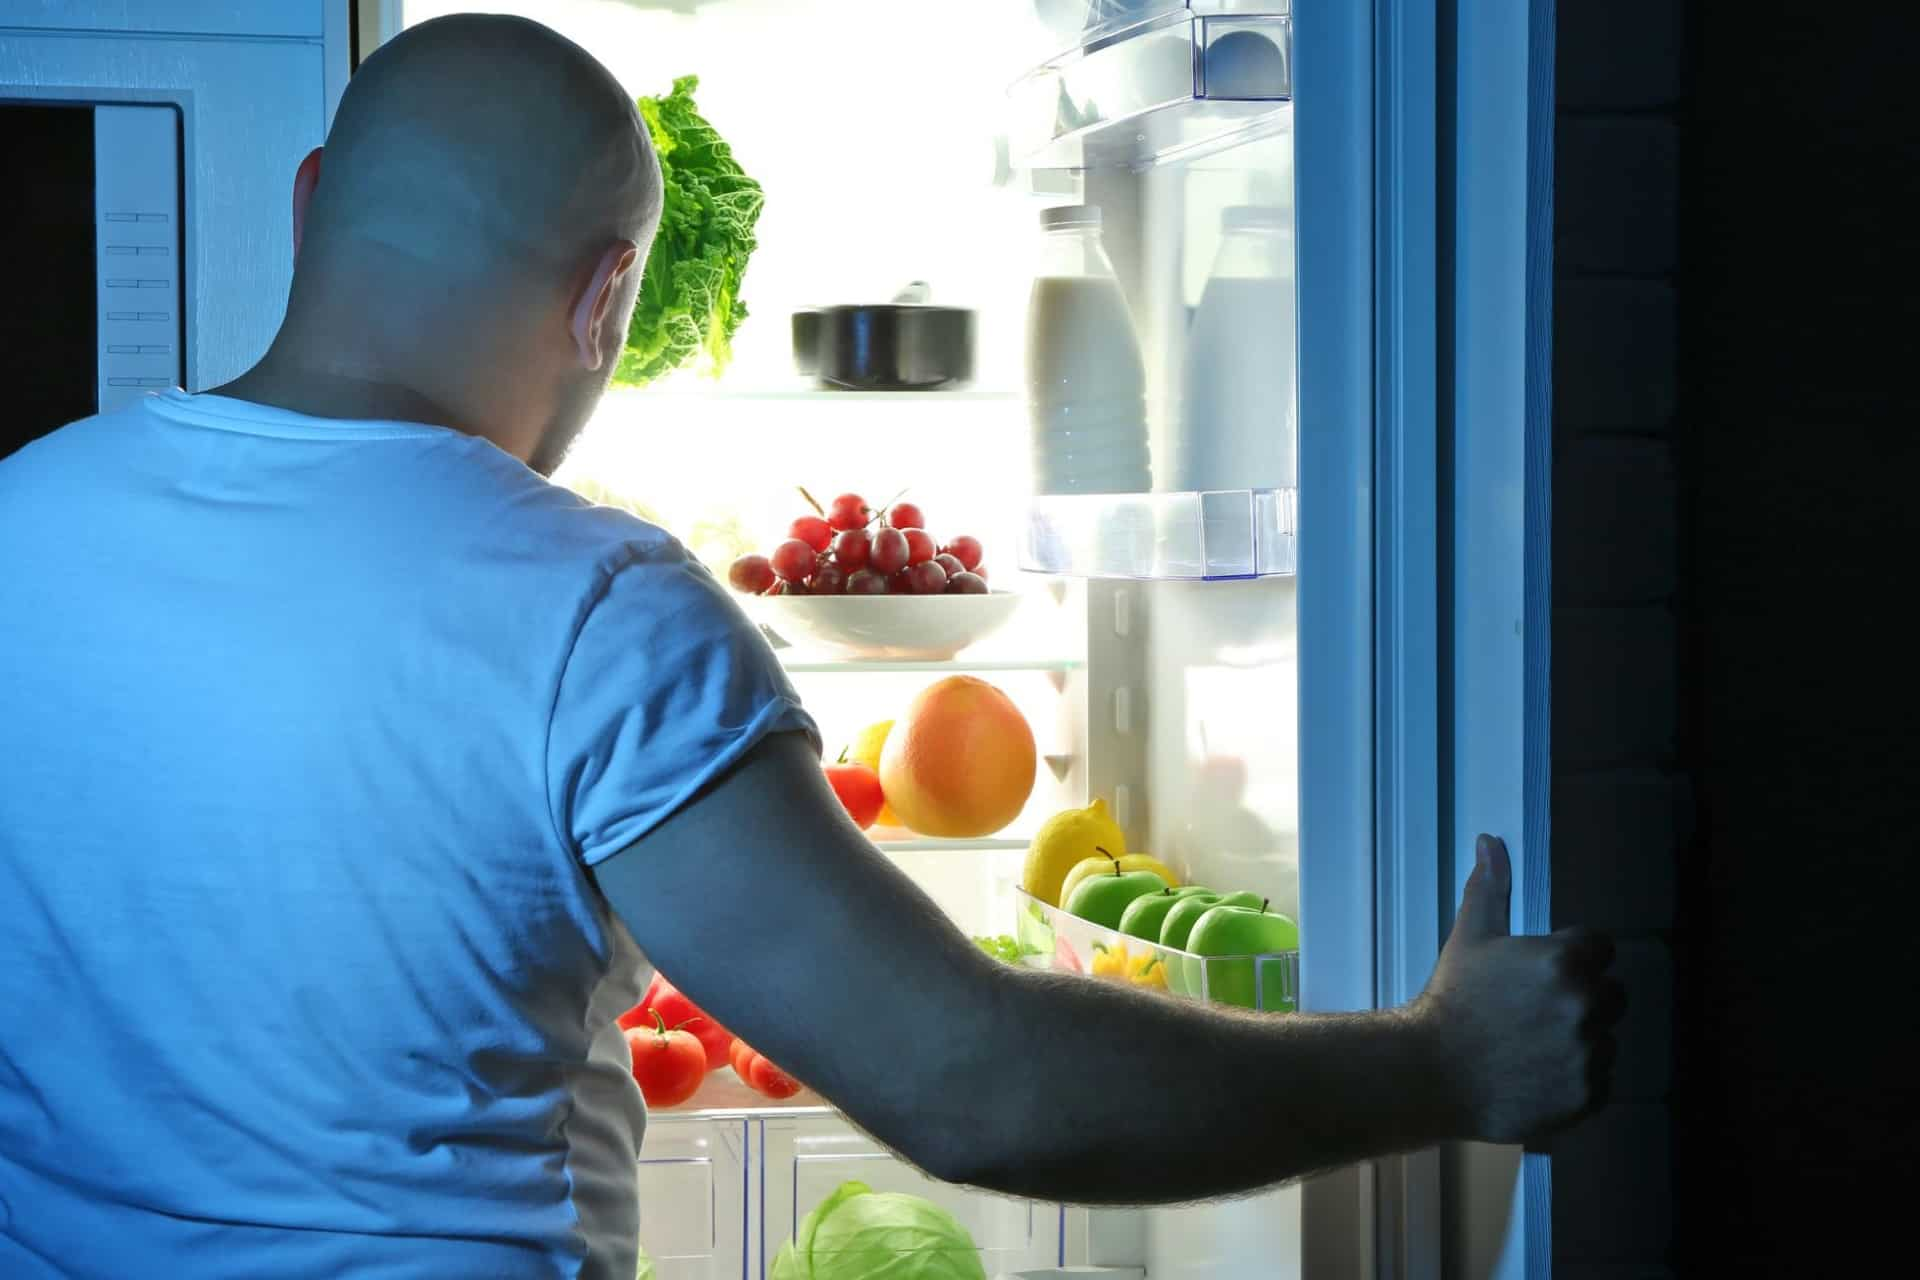 Man stands in front of refrigerator trying to decide what to eat before bed.